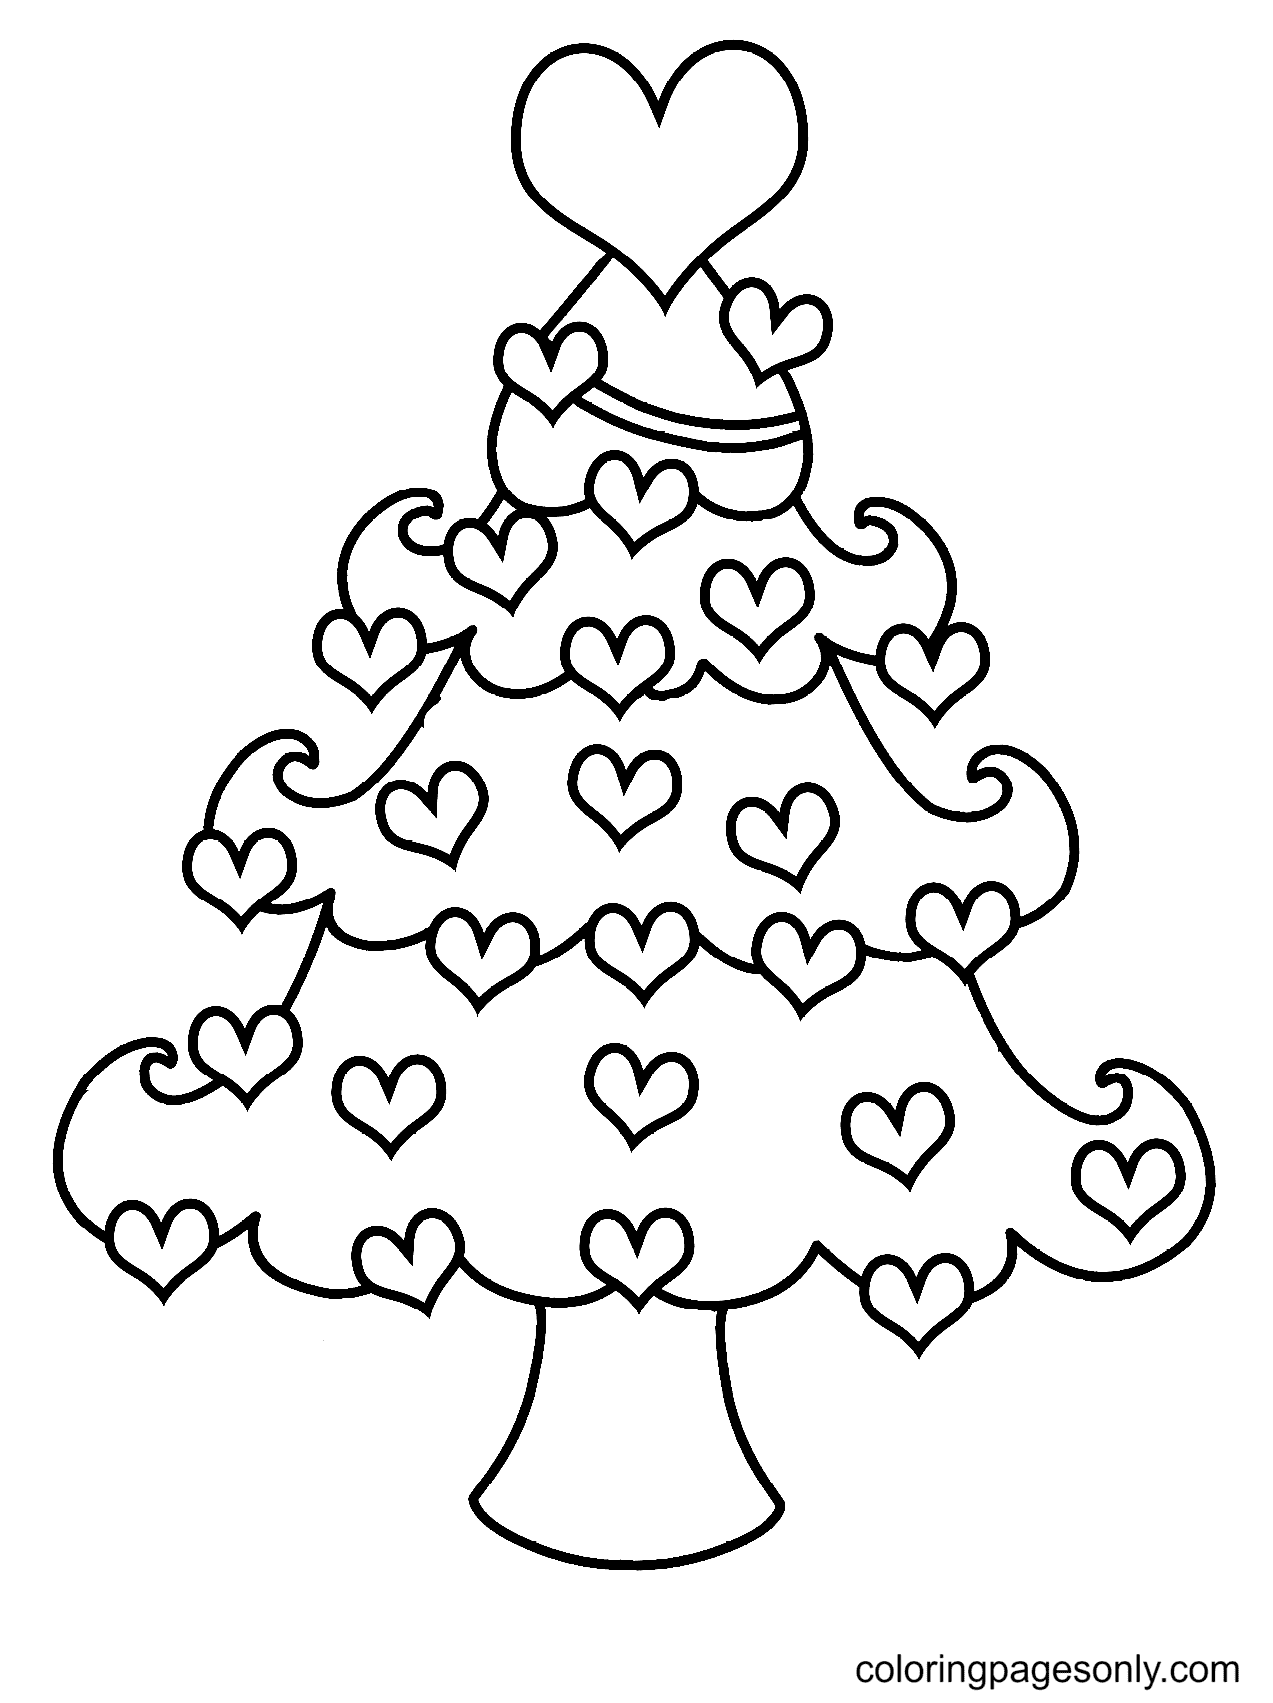 Heart Decorated Christmas Tree Coloring Page